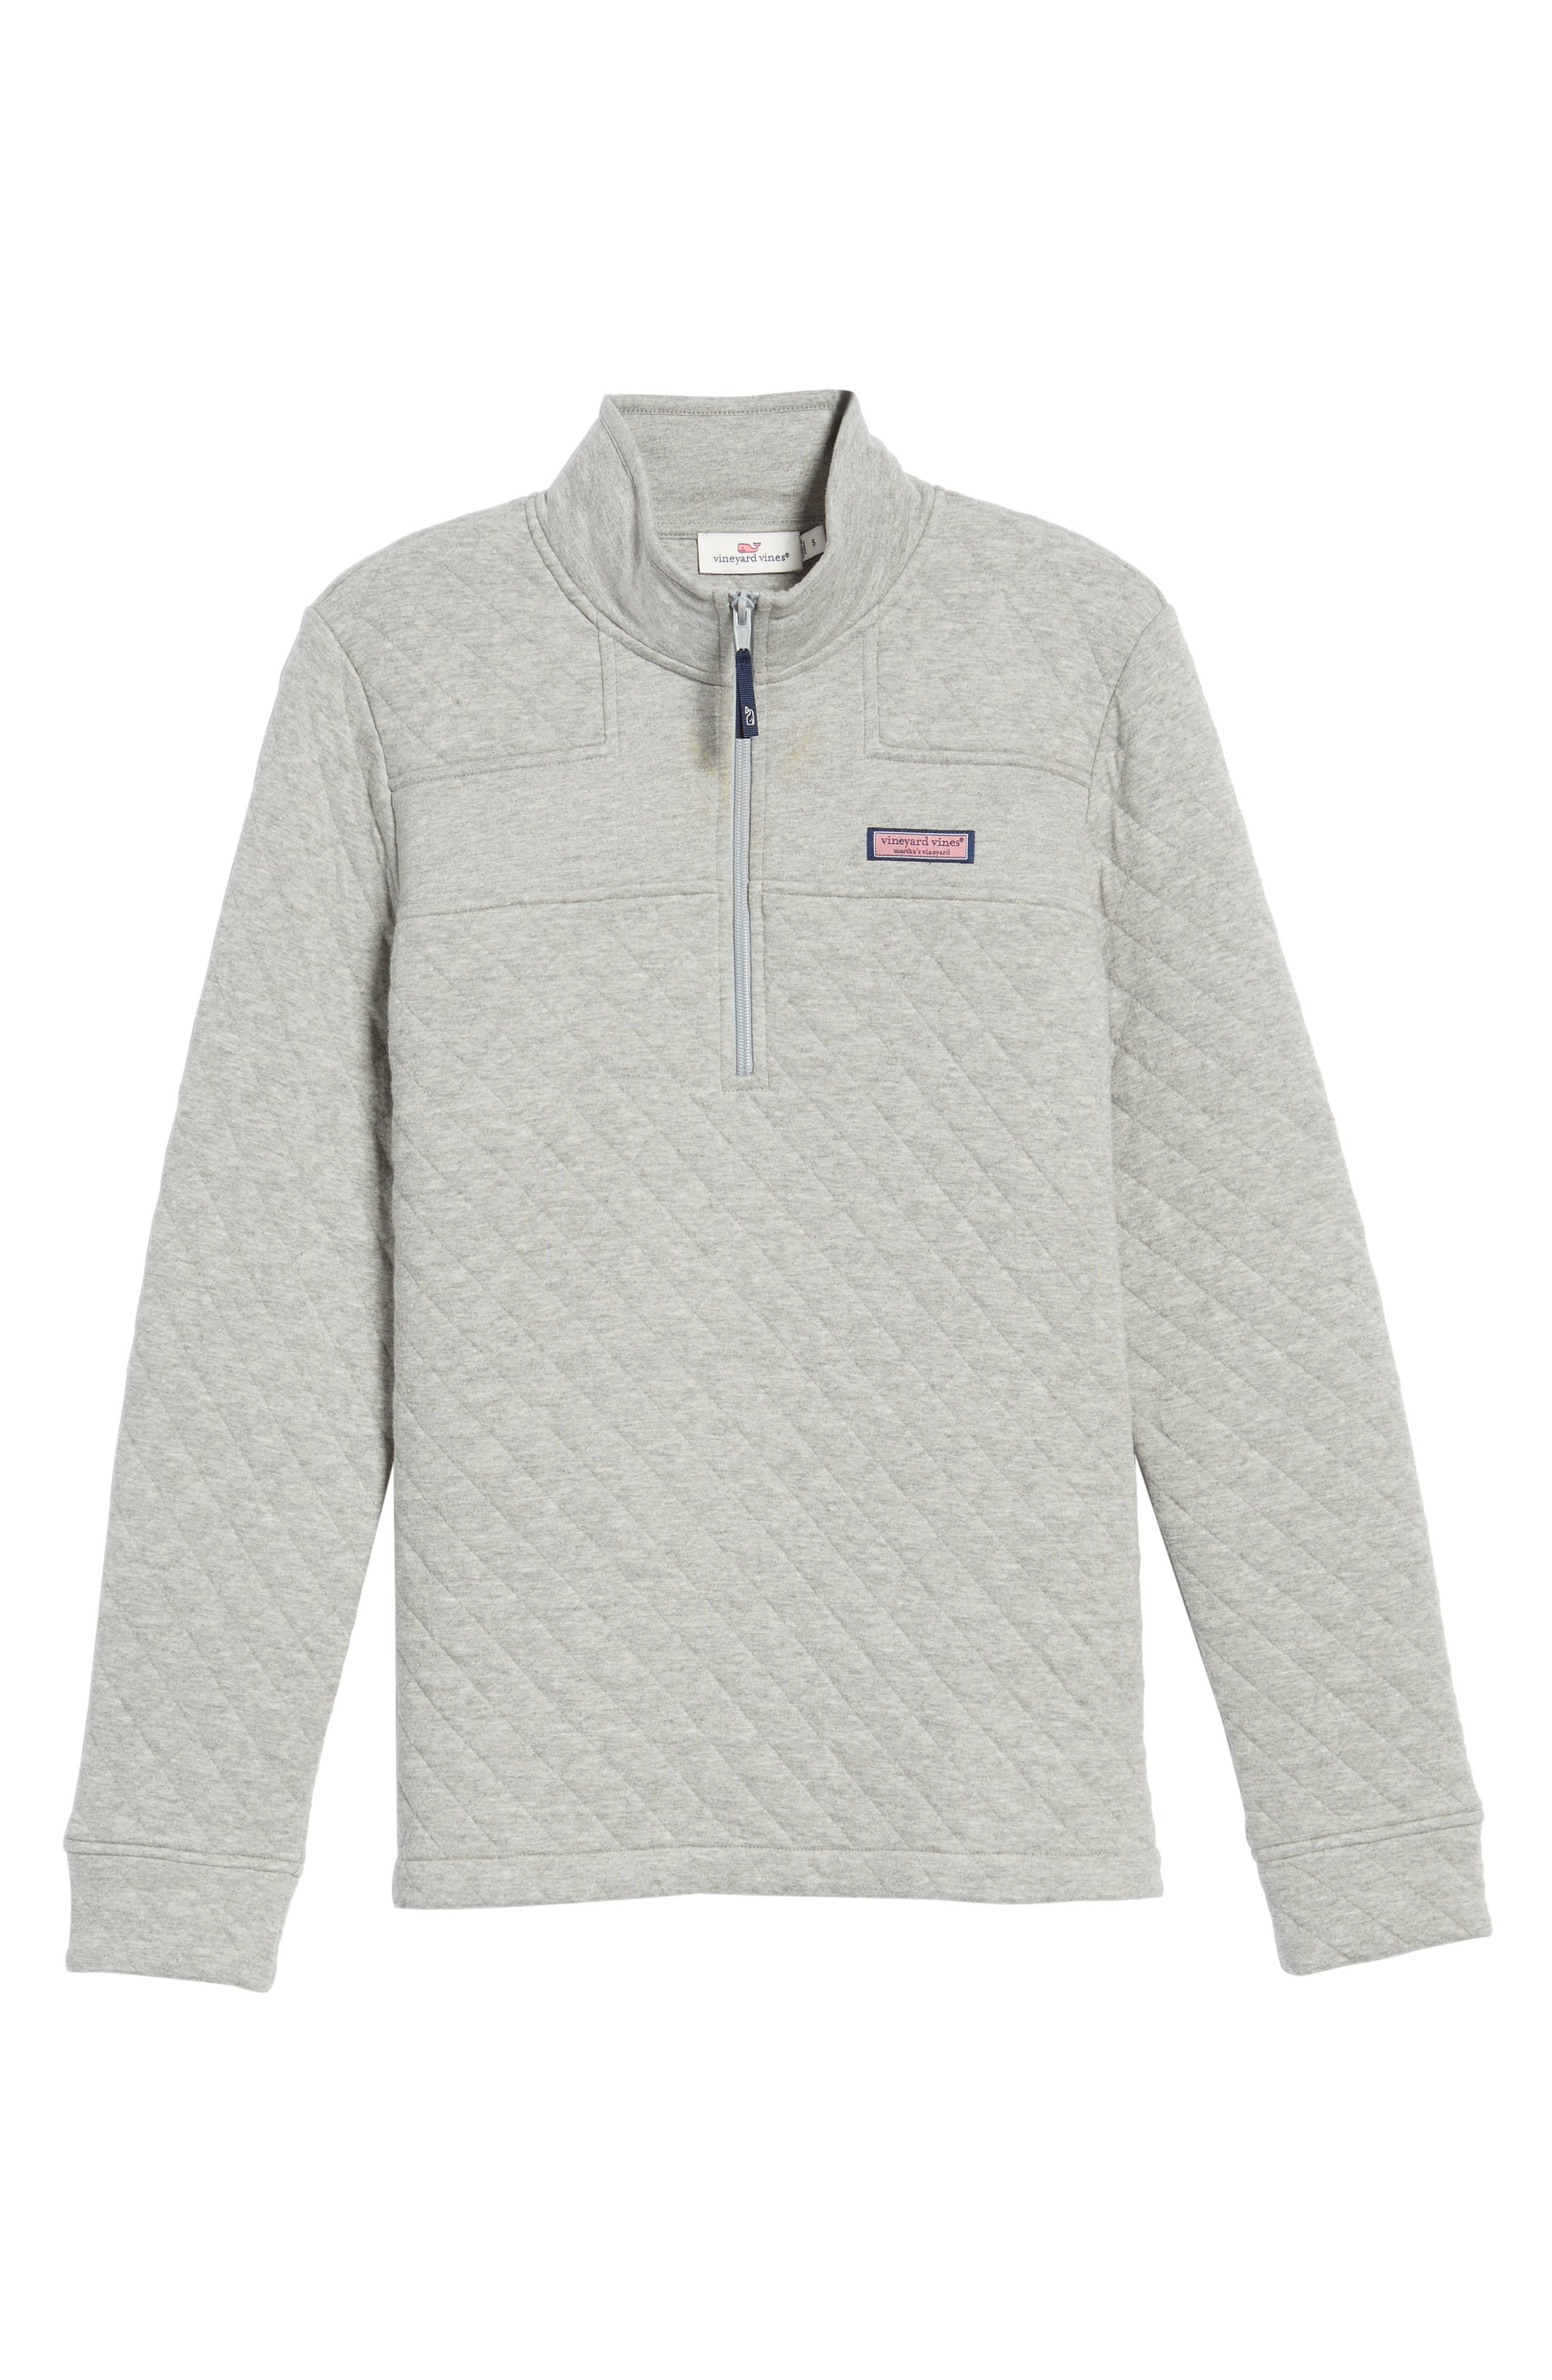 Shep Quilted Quarter Zip Pullover,                             Alternate thumbnail 5, color,                             Silver Fox